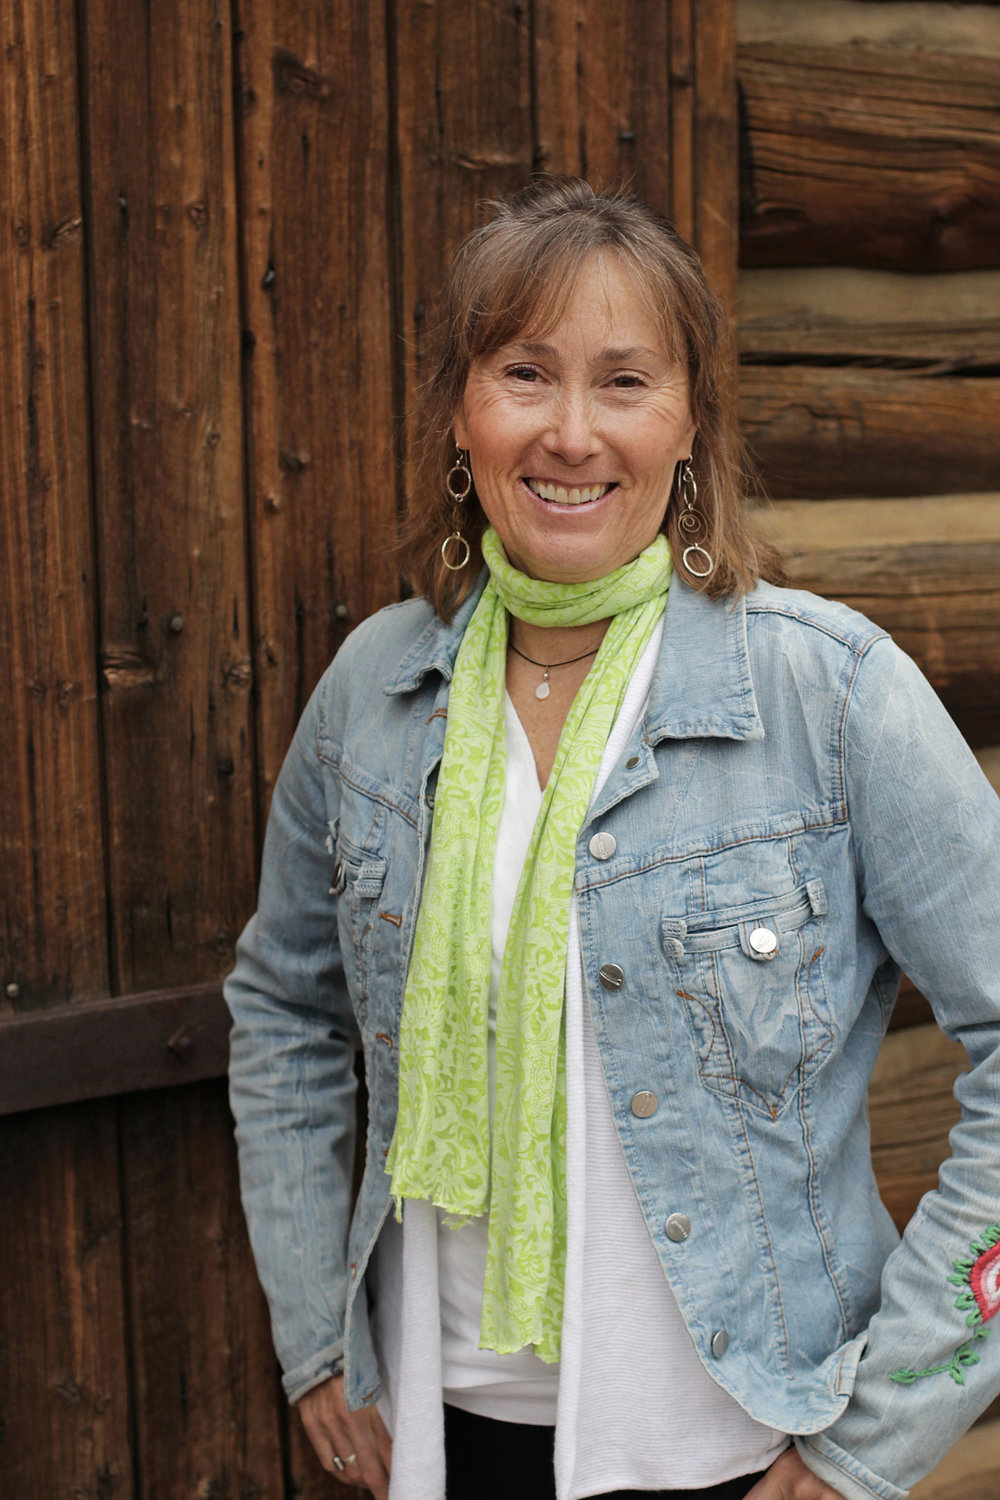 "Meet Mary Brooks  - SPENDING MOST OF HER LIFE IN THE MOUNTAINS WAS A DREAM COME TRUE!!Mary D. Brooks, a native of Western Massachusetts, moved to Colorado in 1981 and operated a Real Estate Rental Business in Denver. Her love of skiing brought her to Breckenridge in 1984 where she became a Fully Certified Ski Instructor. In 1988 she became a Real Estate Broker selling in Breckenridge. In 1992 Mary opened her own Real Estate office, and in 2001 she joined RE/MAX/Breckenridge. Since joining RE/MAX, Mary has been honored on a yearly basis with being a Top Producer.In 2009 Mary found the Buyer and sold a Record Breaking 8.3 Million Dollar ""Ski in Ski Out"" Home on Peak 8 . RE/MAX awards include: 100% Club, Platinum Club, Lifetime Achievement Award, and the Highest Honor; The Chairman's Club.Mary majored in Fashion Design in College and is a certified Realtor-Stager. She enjoys putting her creative side to work as part of her marketing strategy. This added edge helps Mary sell her listings faster.With her many years of successful experience, her affiliation with the #1 Company in Summit County and her love of helping others, she offers her clients a ""SUPERIOR"" level of service.Mary is honored to help you with the Buying or Selling of your Mountain Property."